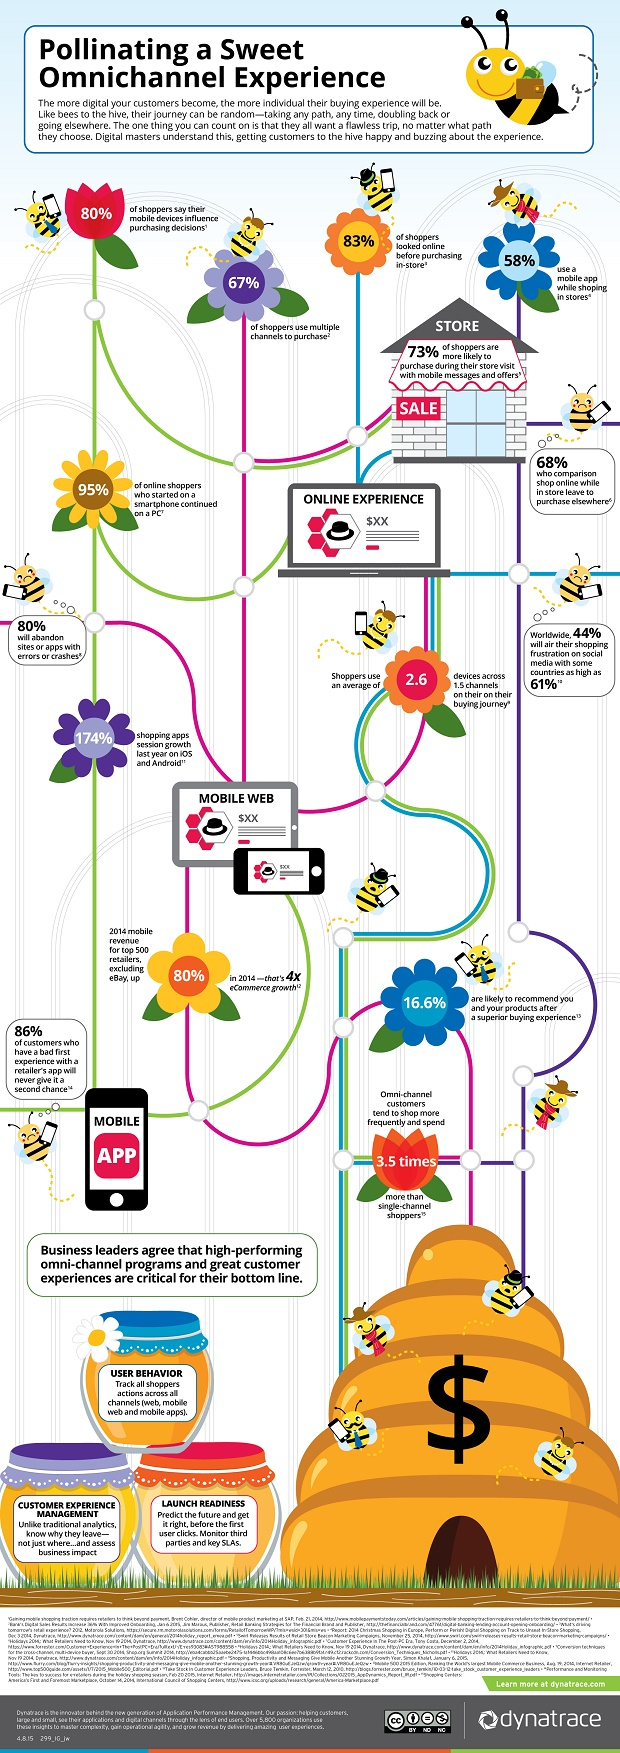 Pollinating-Omnichannel-Experience.jpg